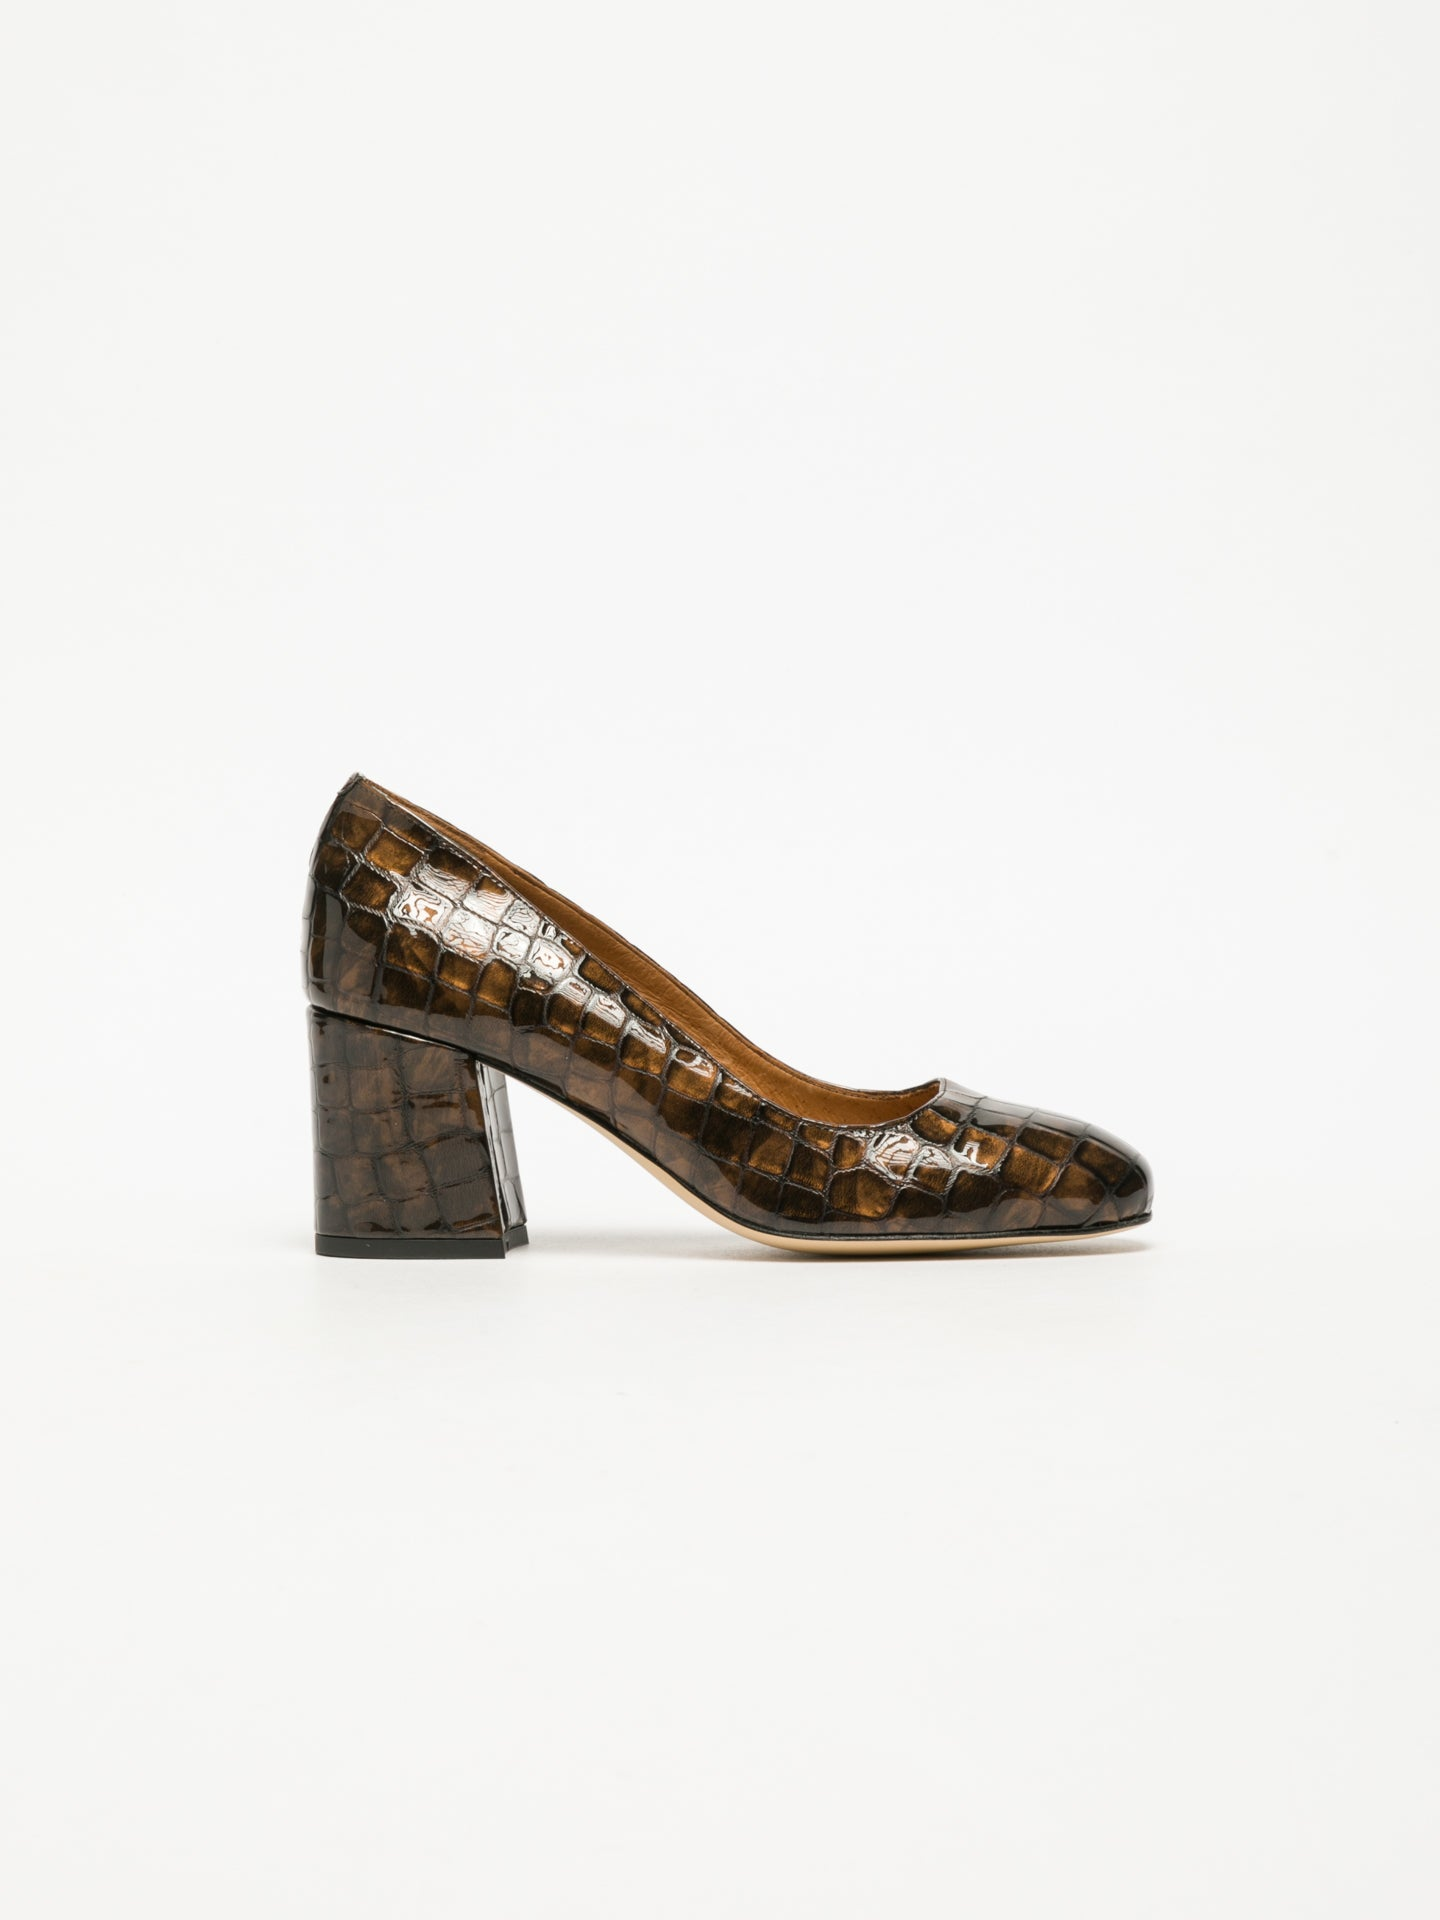 Sofia Costa Brown Classic Pumps Shoes